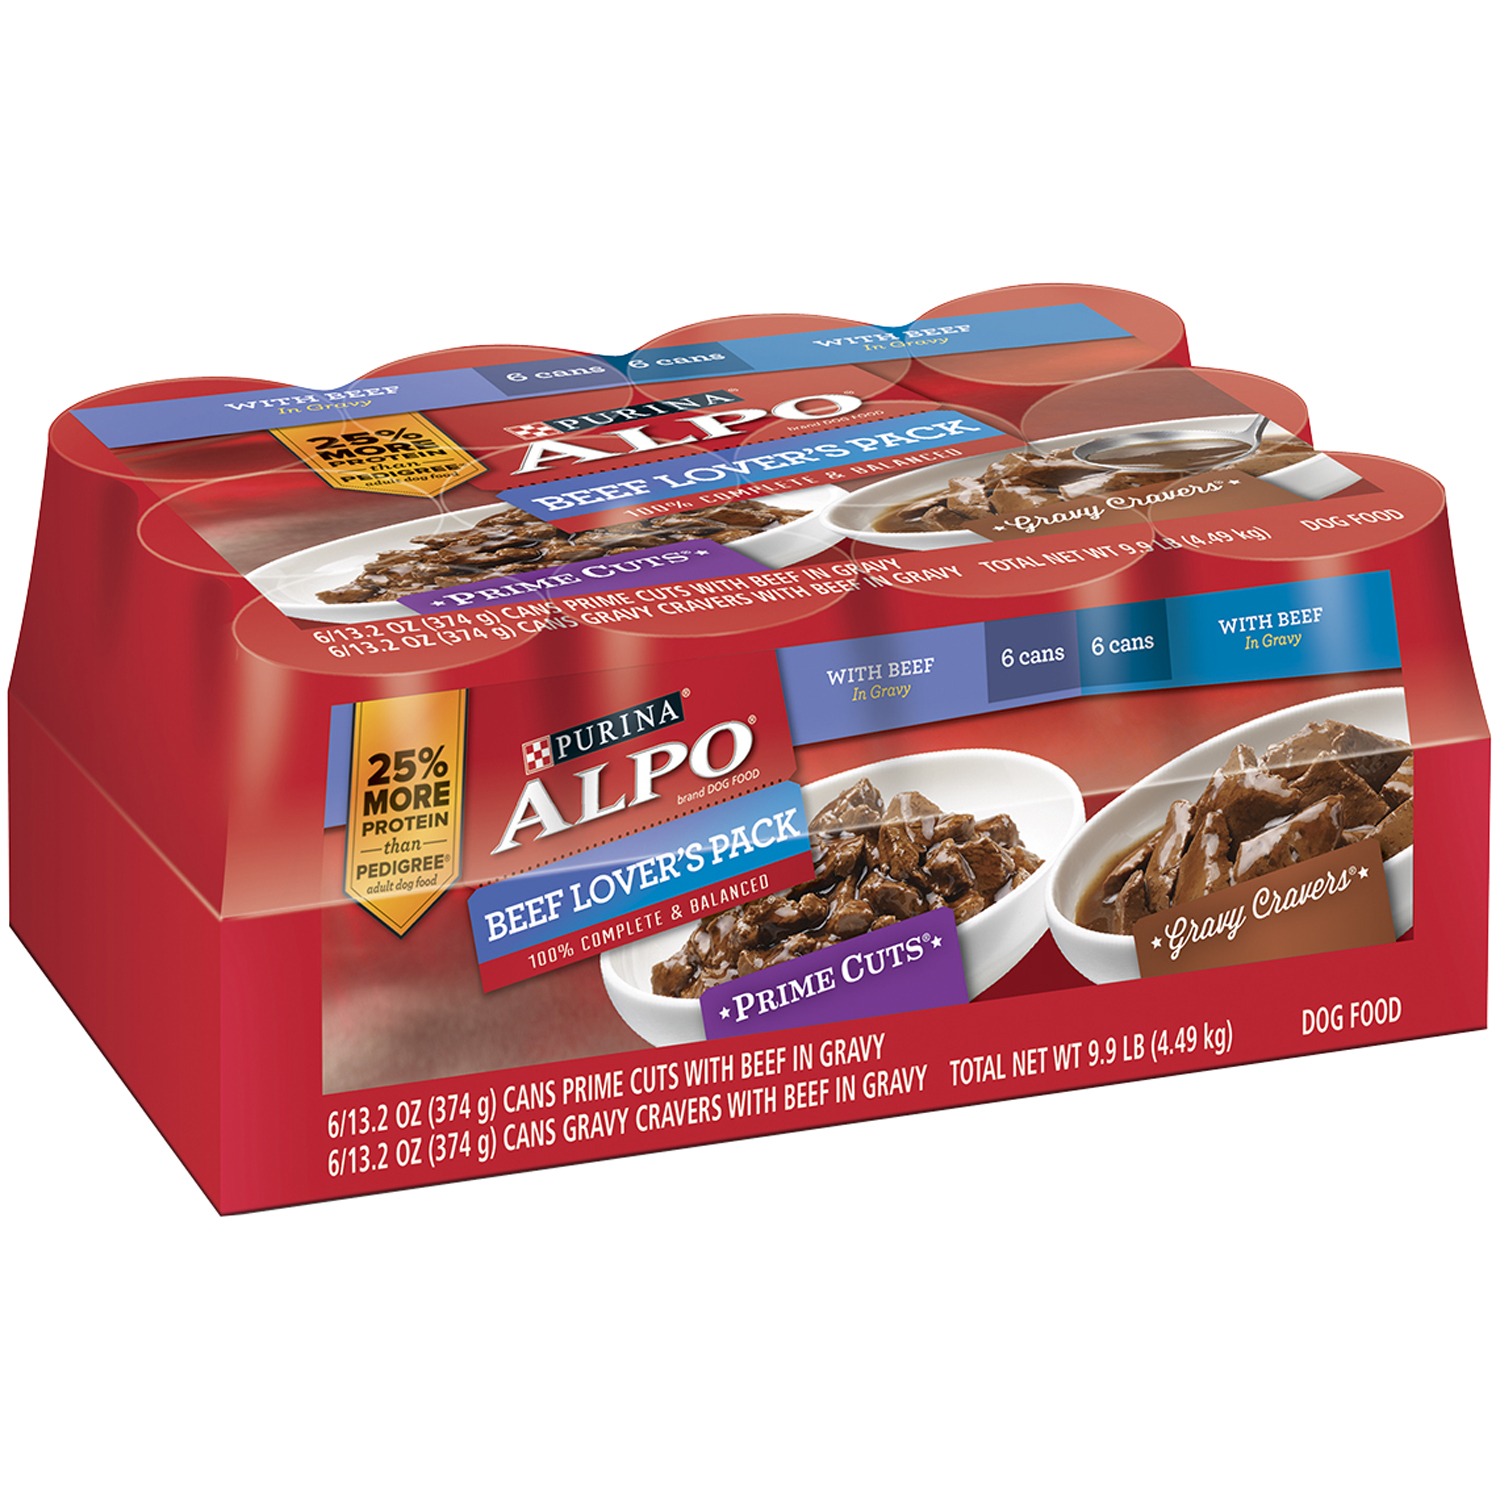 Purina ALPO Homestyle Beef Lover's Pack Canned Dog Food, 13.2 Oz (Case of 12)